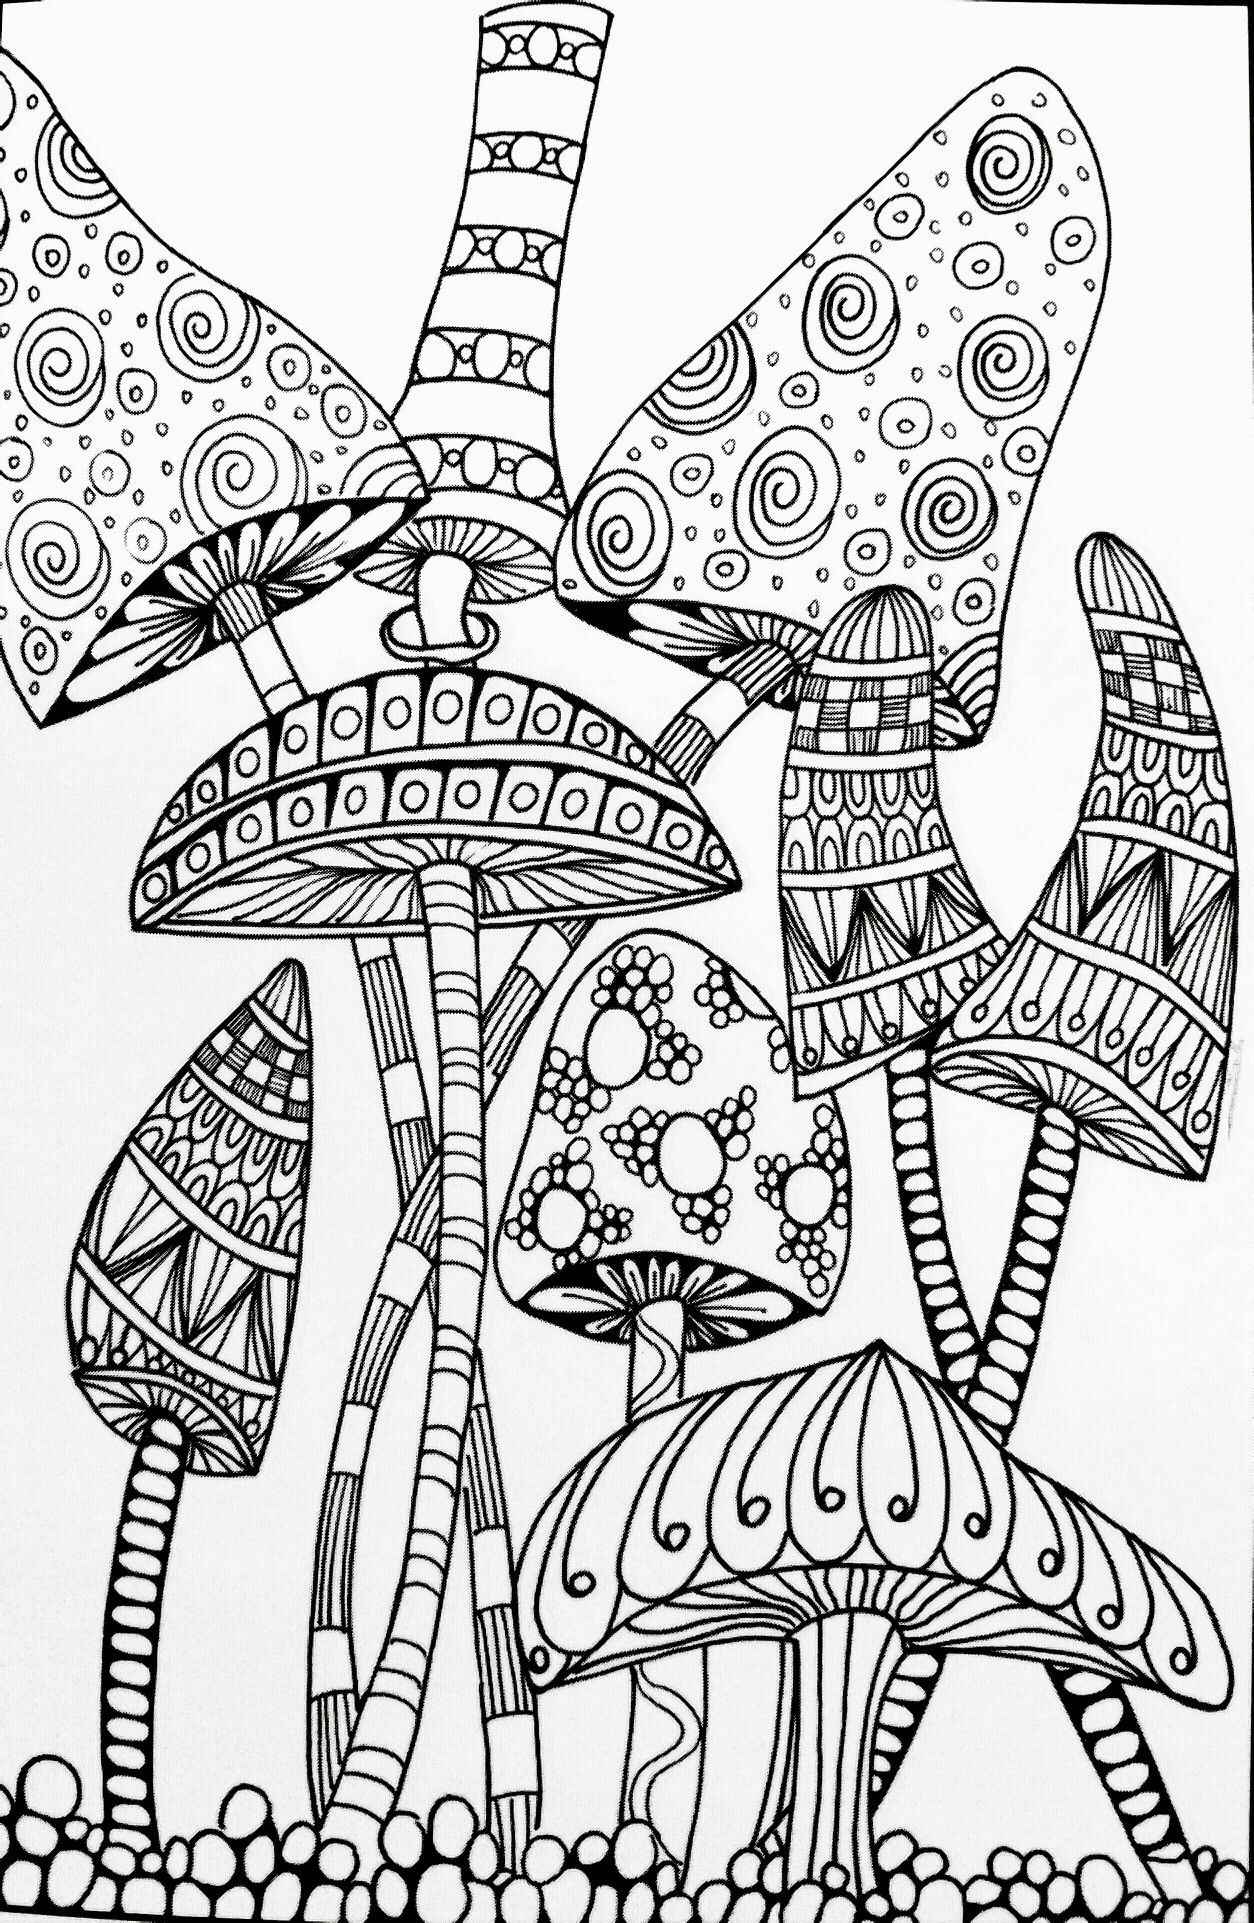 Trippy Mushroom Coloring Pages Free | Free Coloring Books - Free Printable Mushroom Coloring Pages